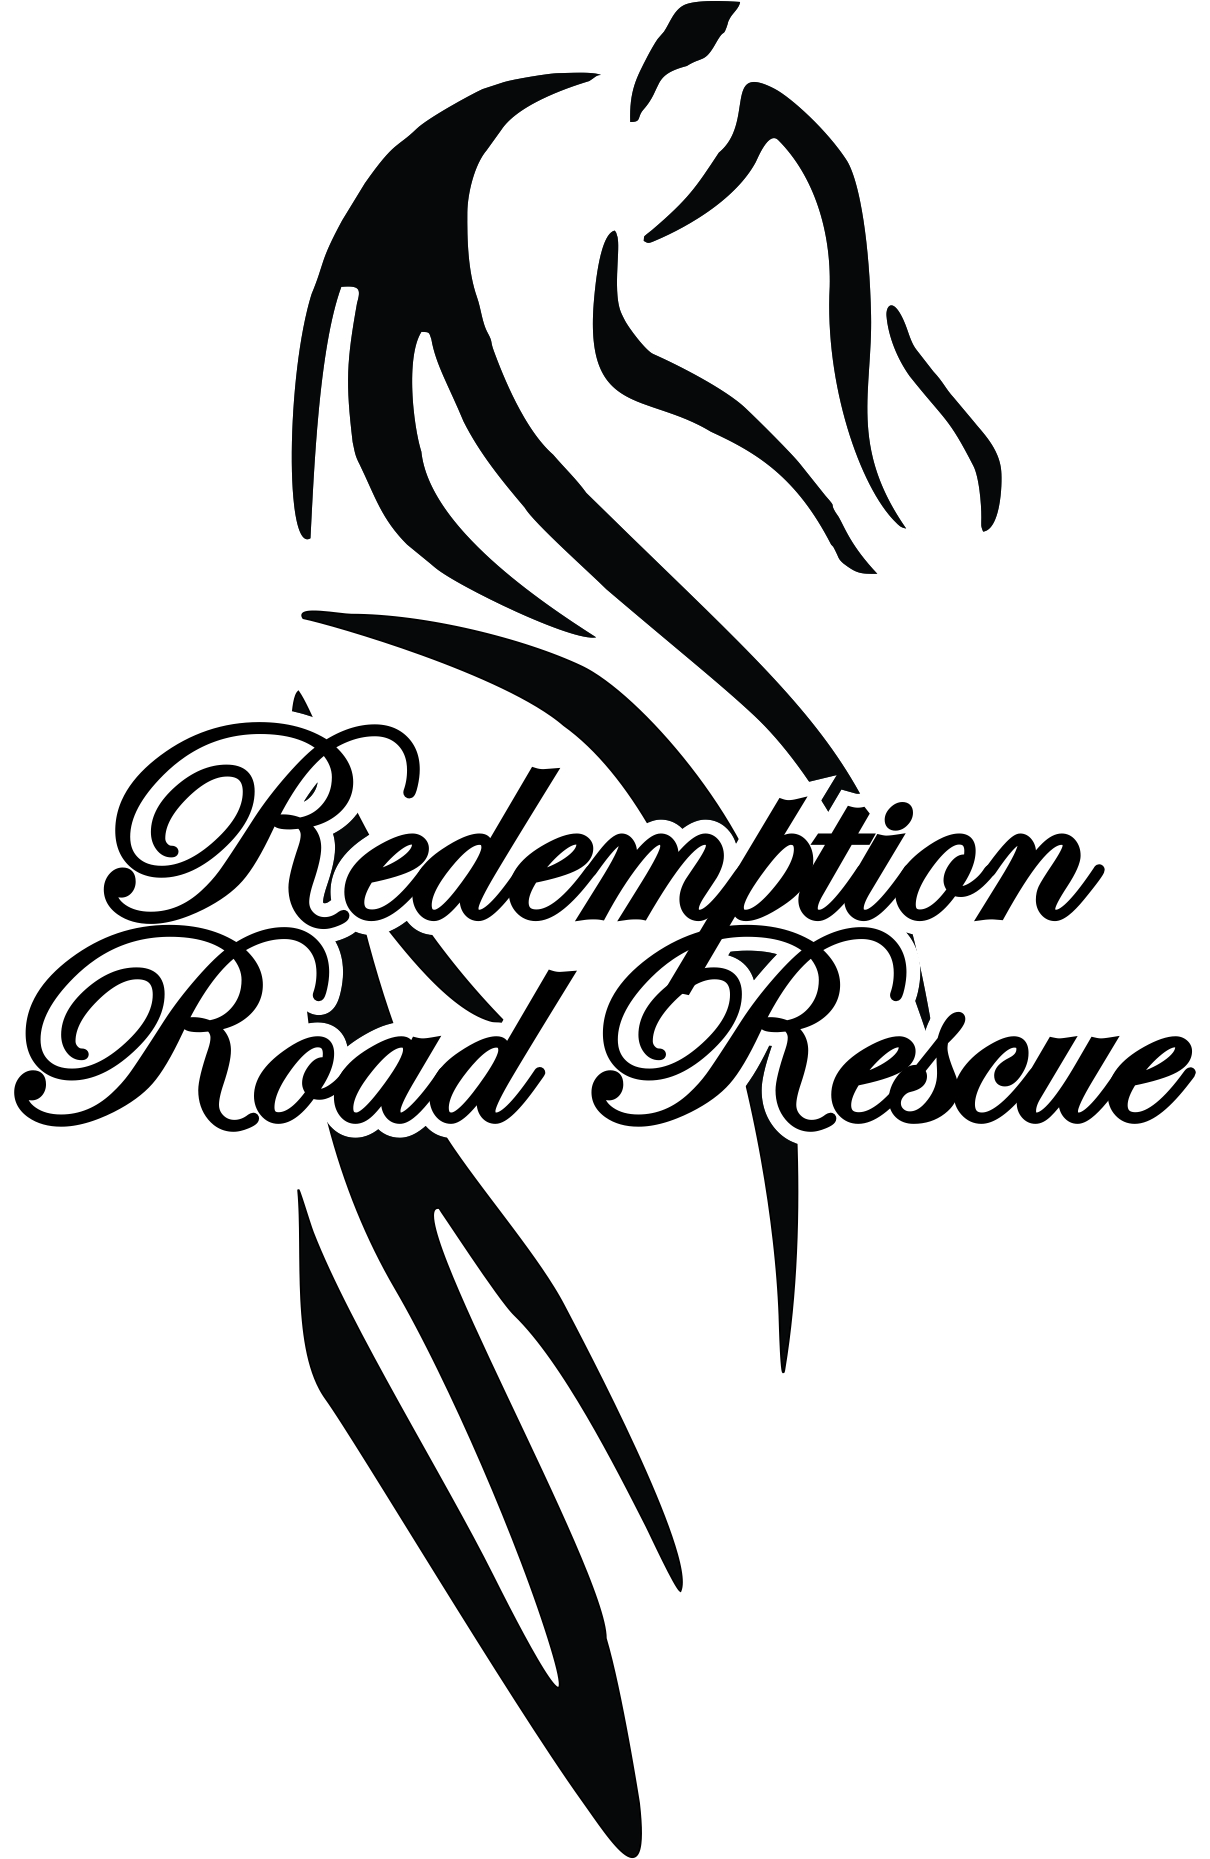 Redemption Road Rescue